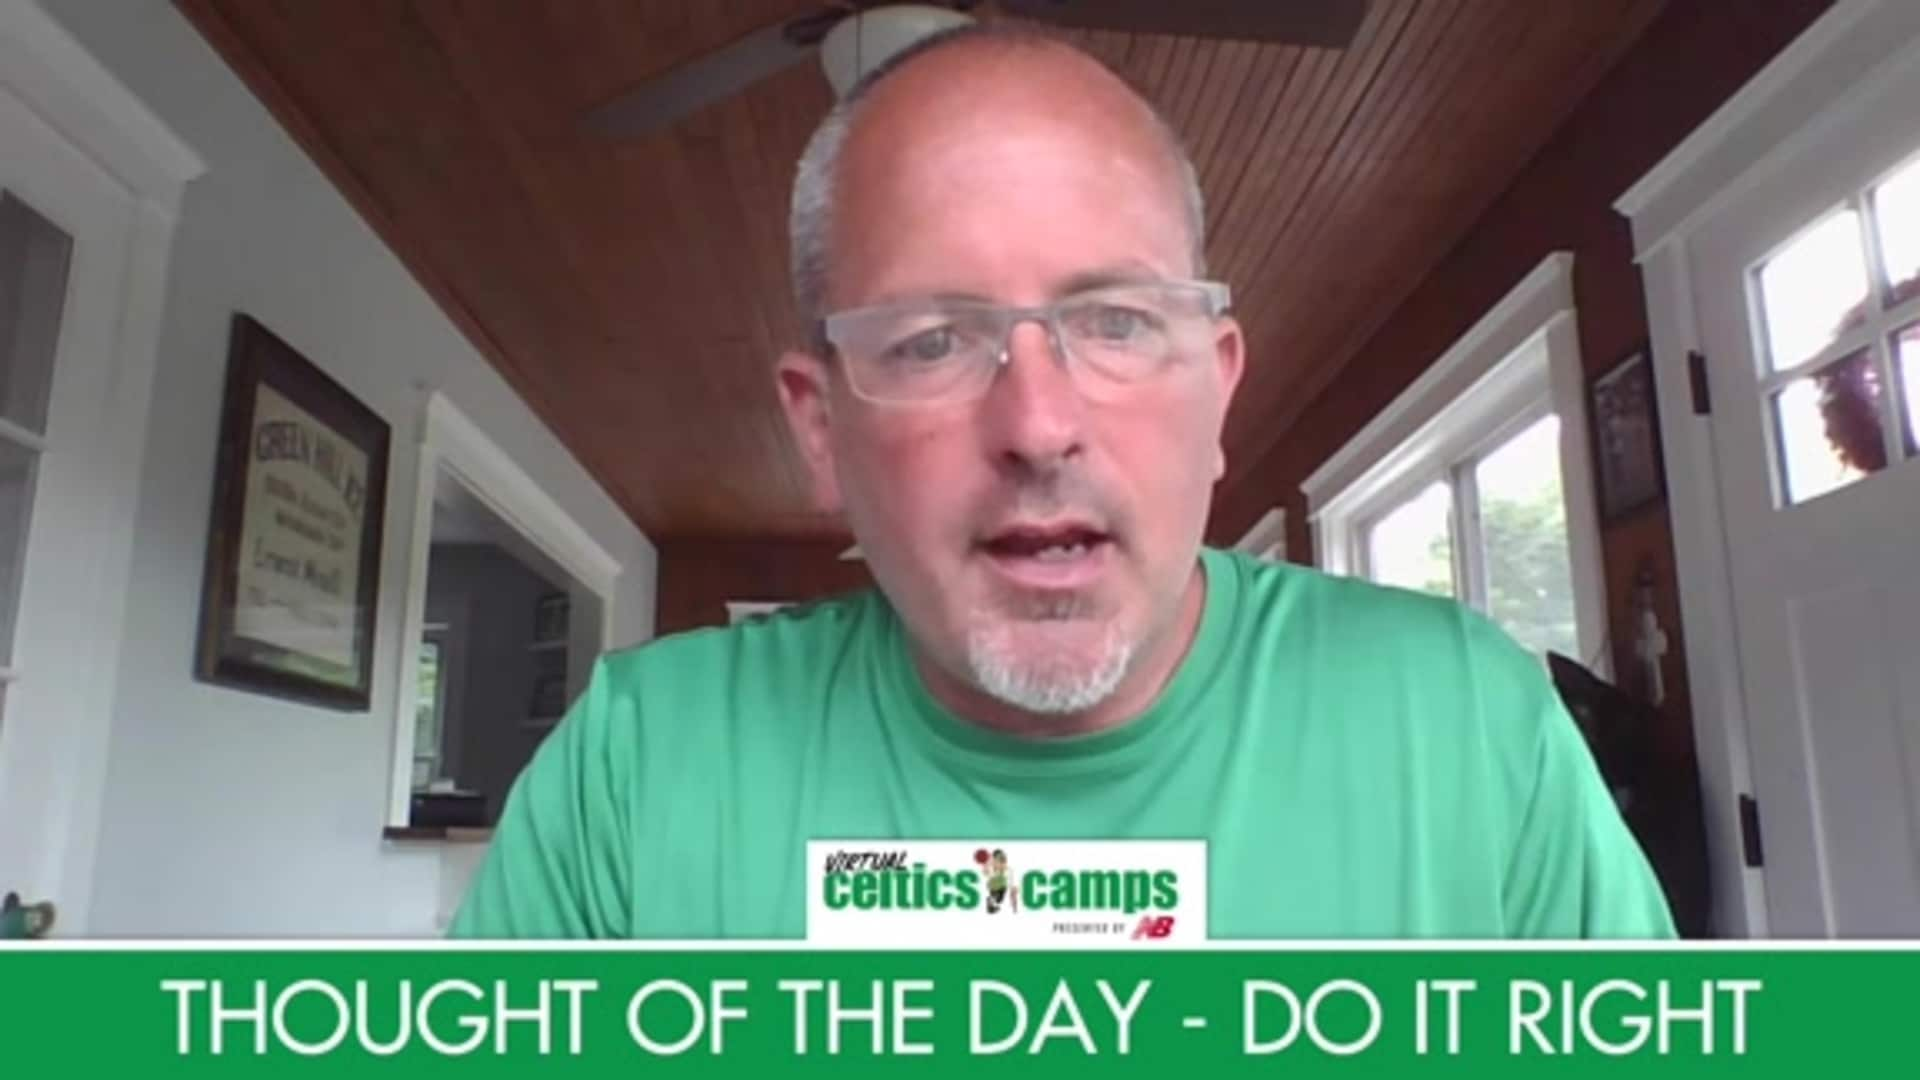 Virtual Celtics Camps - Thought of the Day Do It Right